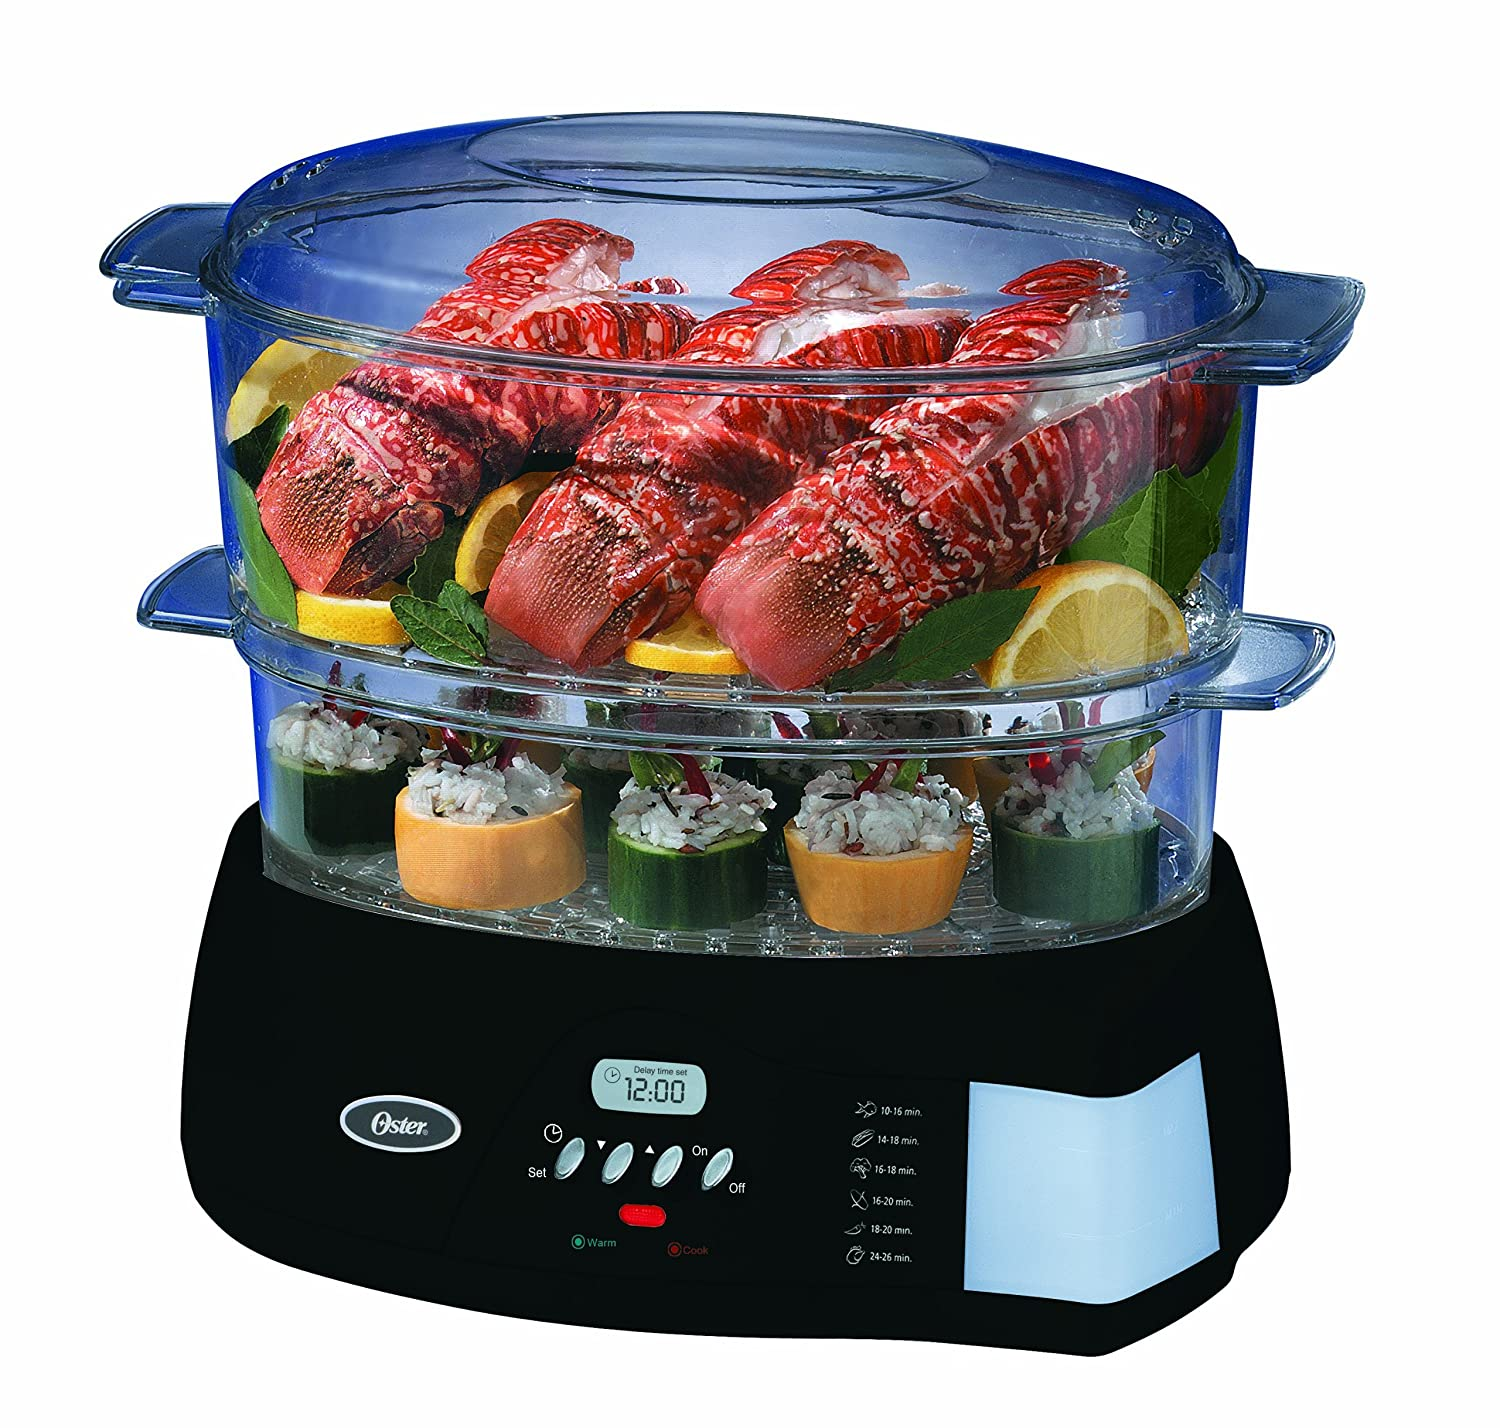 Oster 5716 Programmable Digital Food Steamer, Black